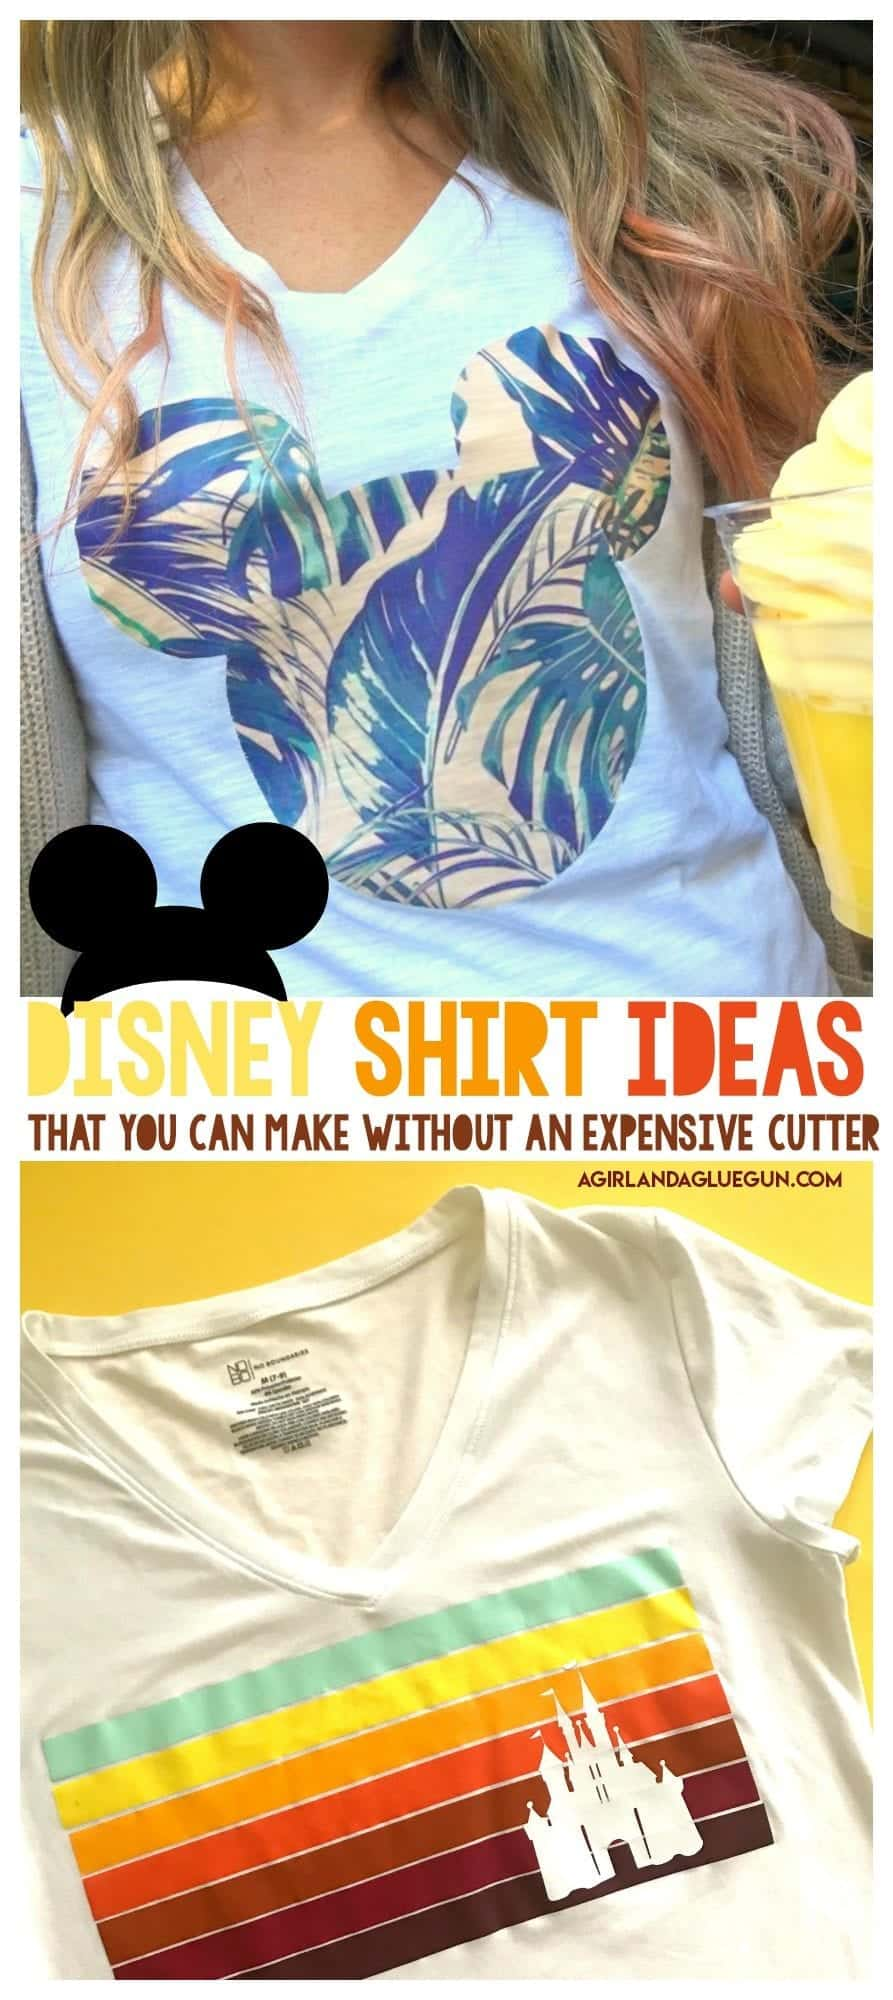 Diy A Disney Shirt With No Electronic Cutter A Girl And A